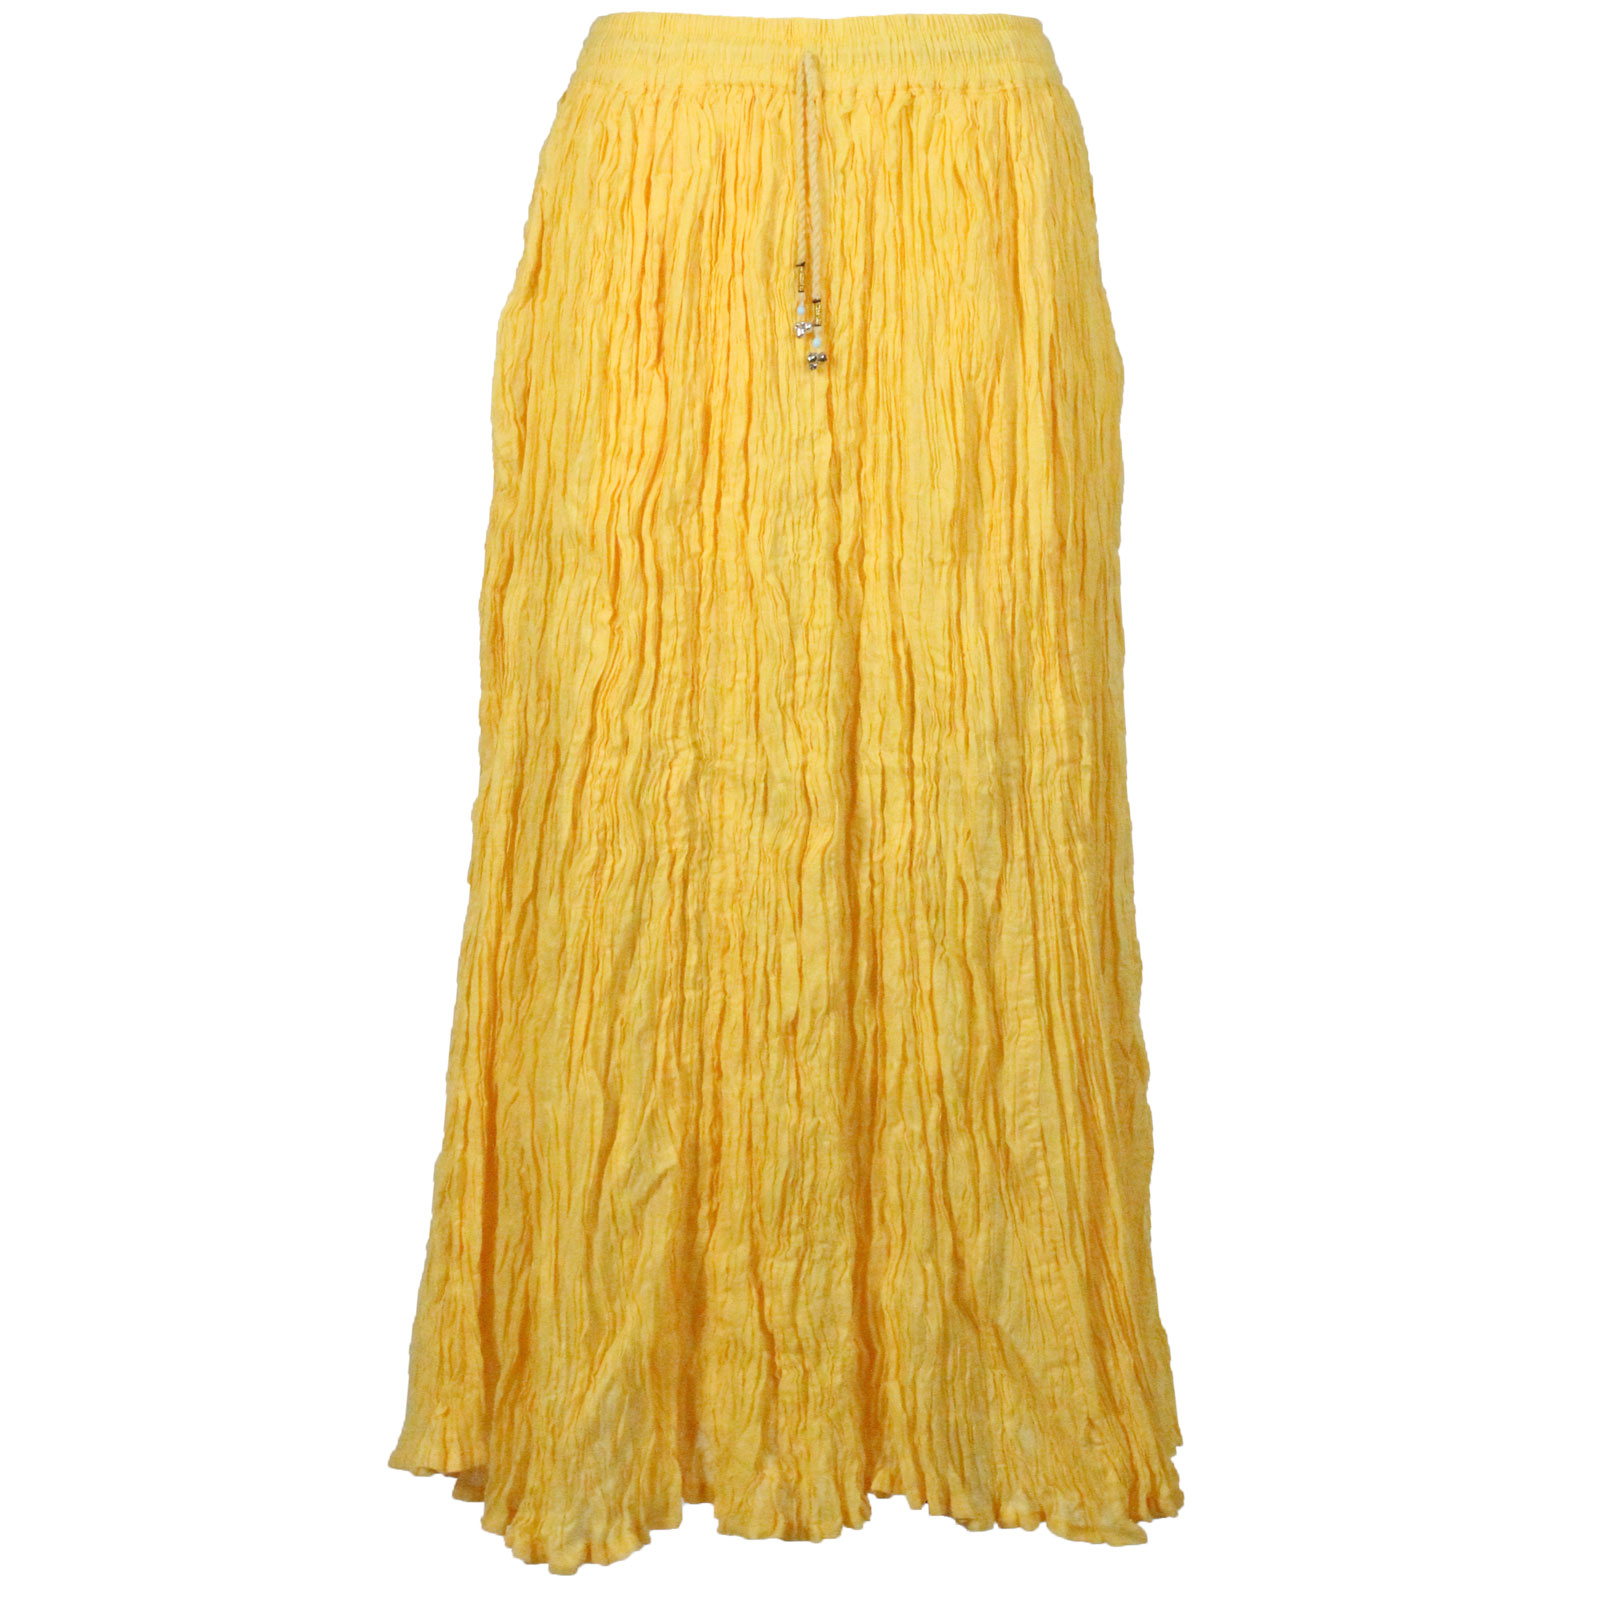 Wholesale Skirts - Long Cotton Broomstick with Pocket 503 Solid Yellow -